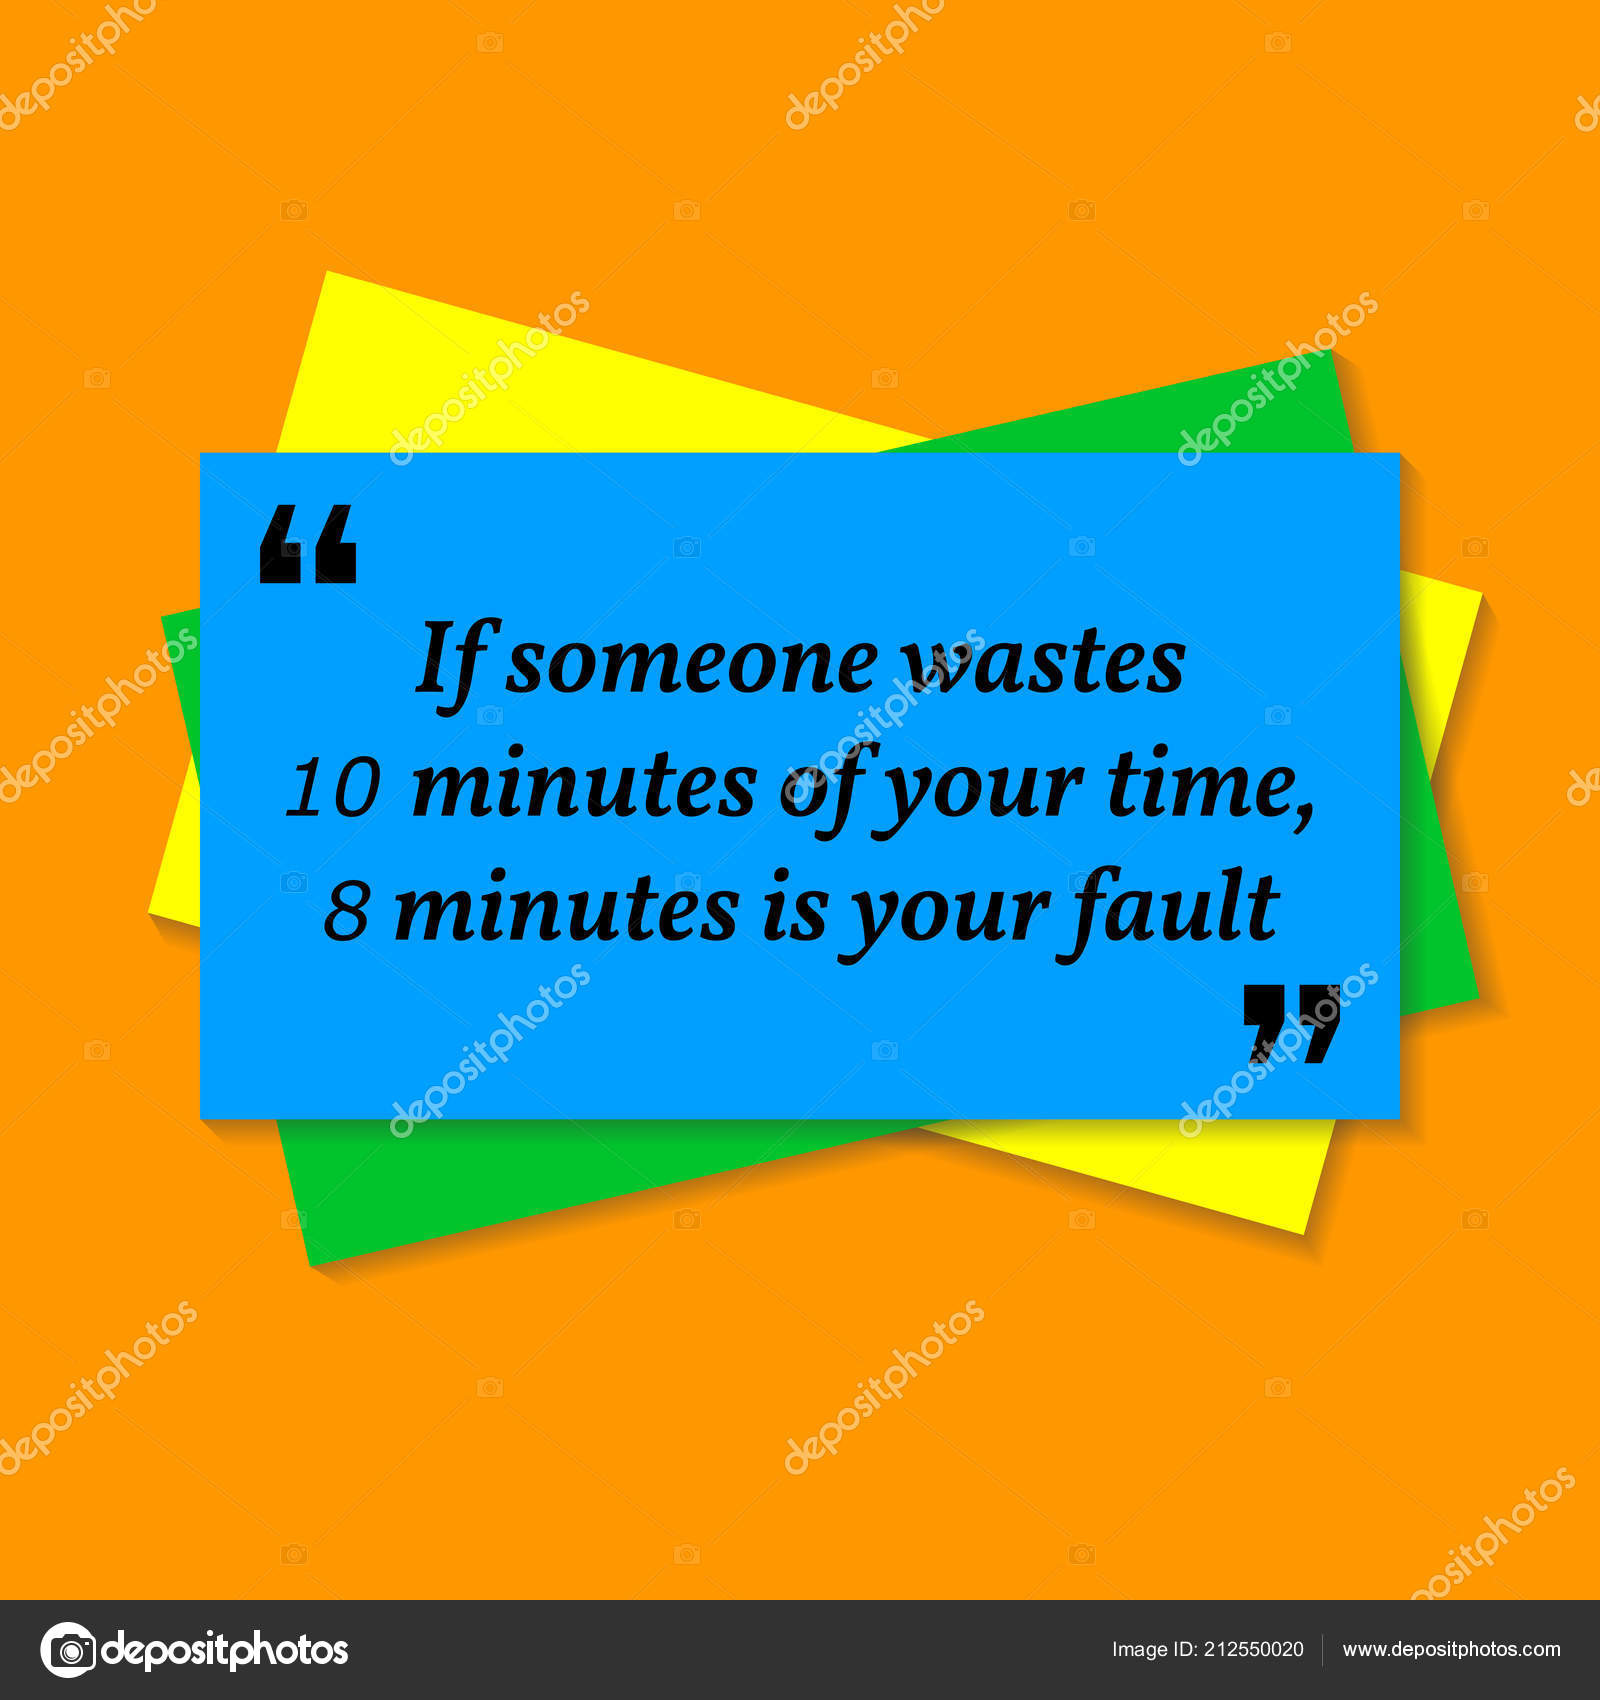 Inspirational motivational quote someone wastes minutes your time inspirational motivational quote if someone wastes 10 minutes of your time 8 minutes is your fault business card style quote on orange background vetor reheart Gallery